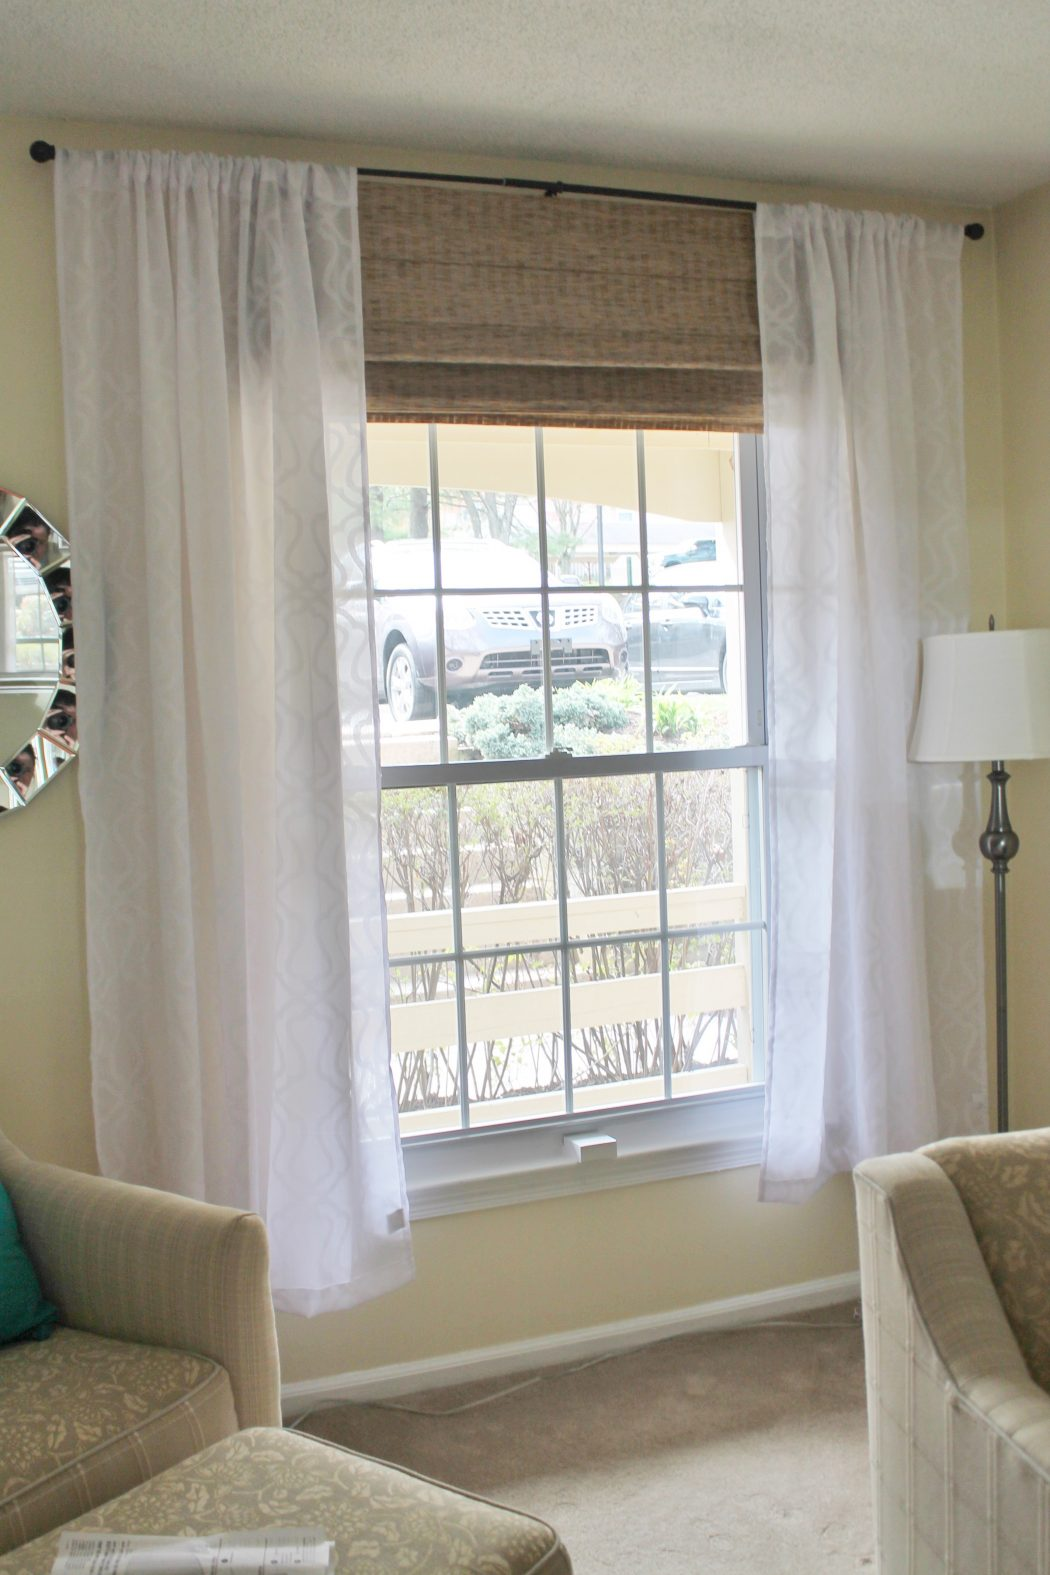 curtains-and-greens-015 20+ Hottest Curtain Design Ideas for 2021